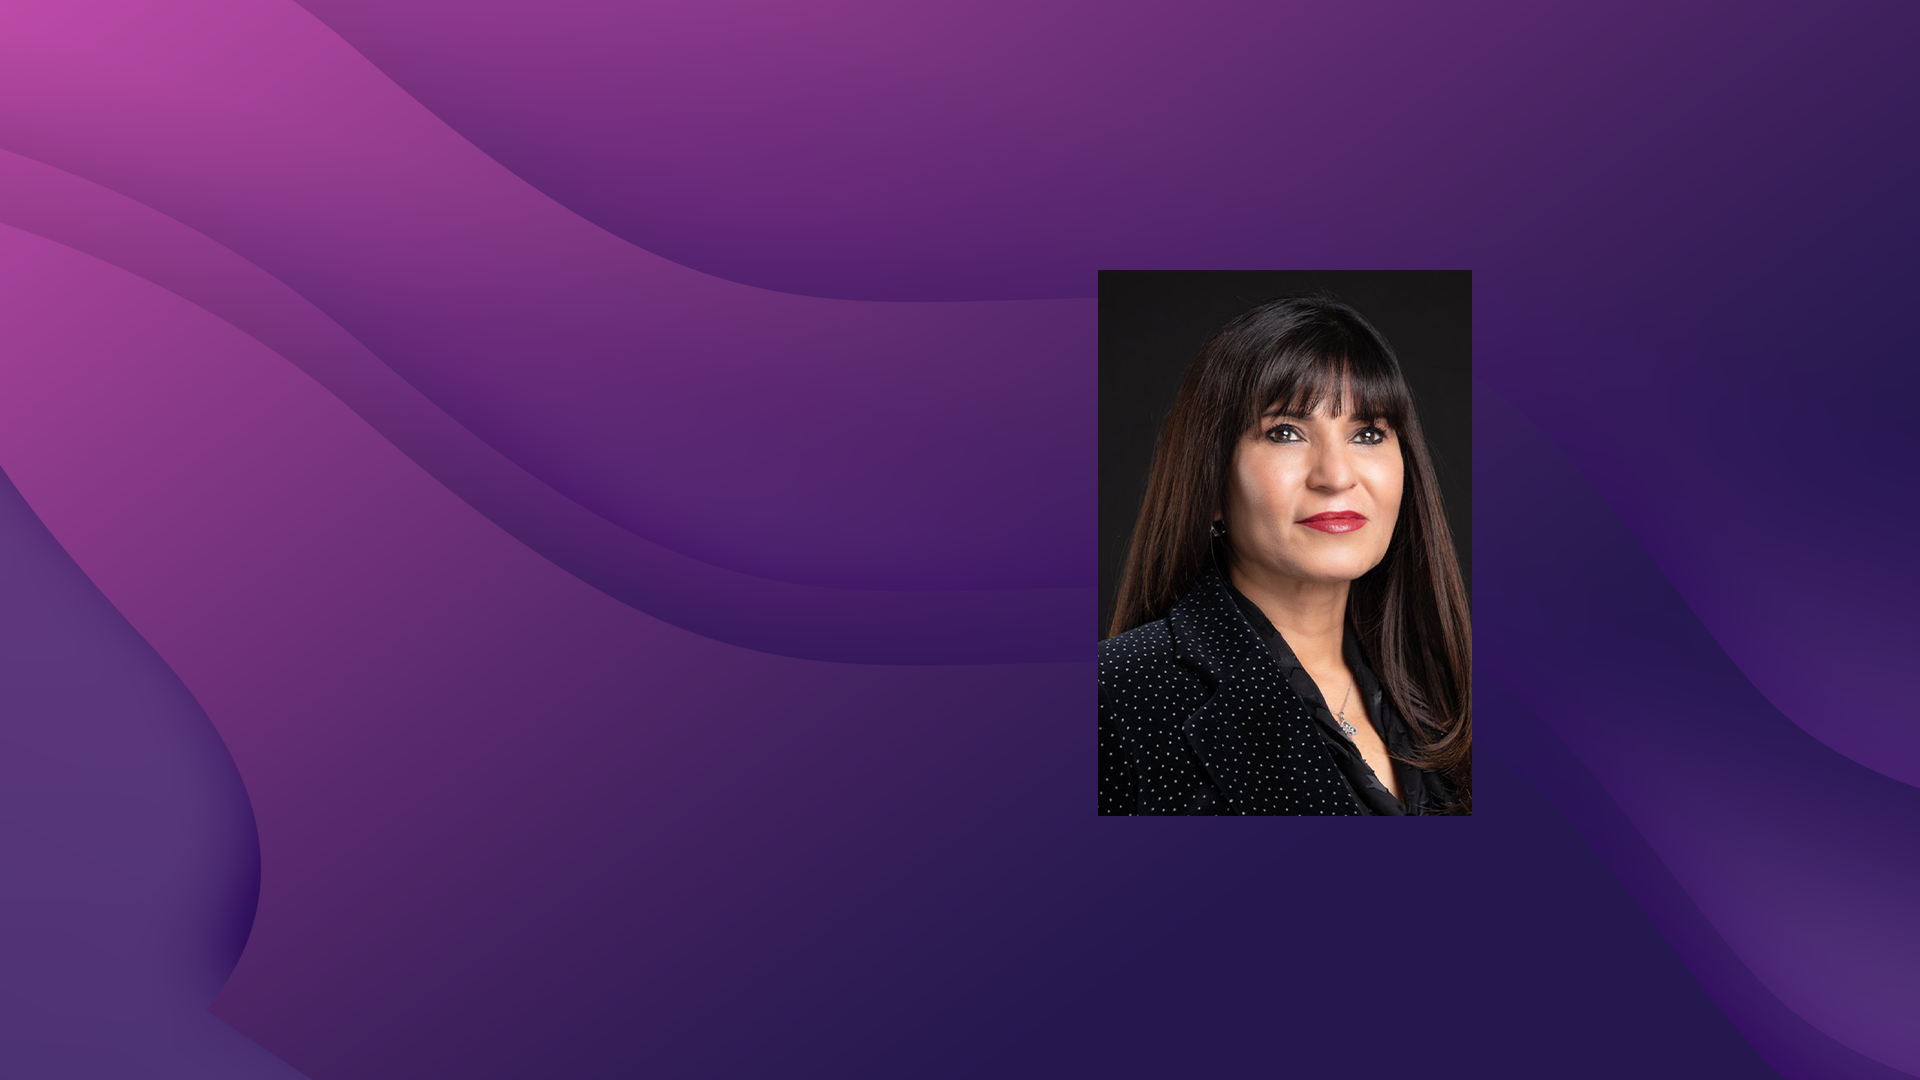 1537: The Inspirational Female CEO Story and LED Lighting Technology